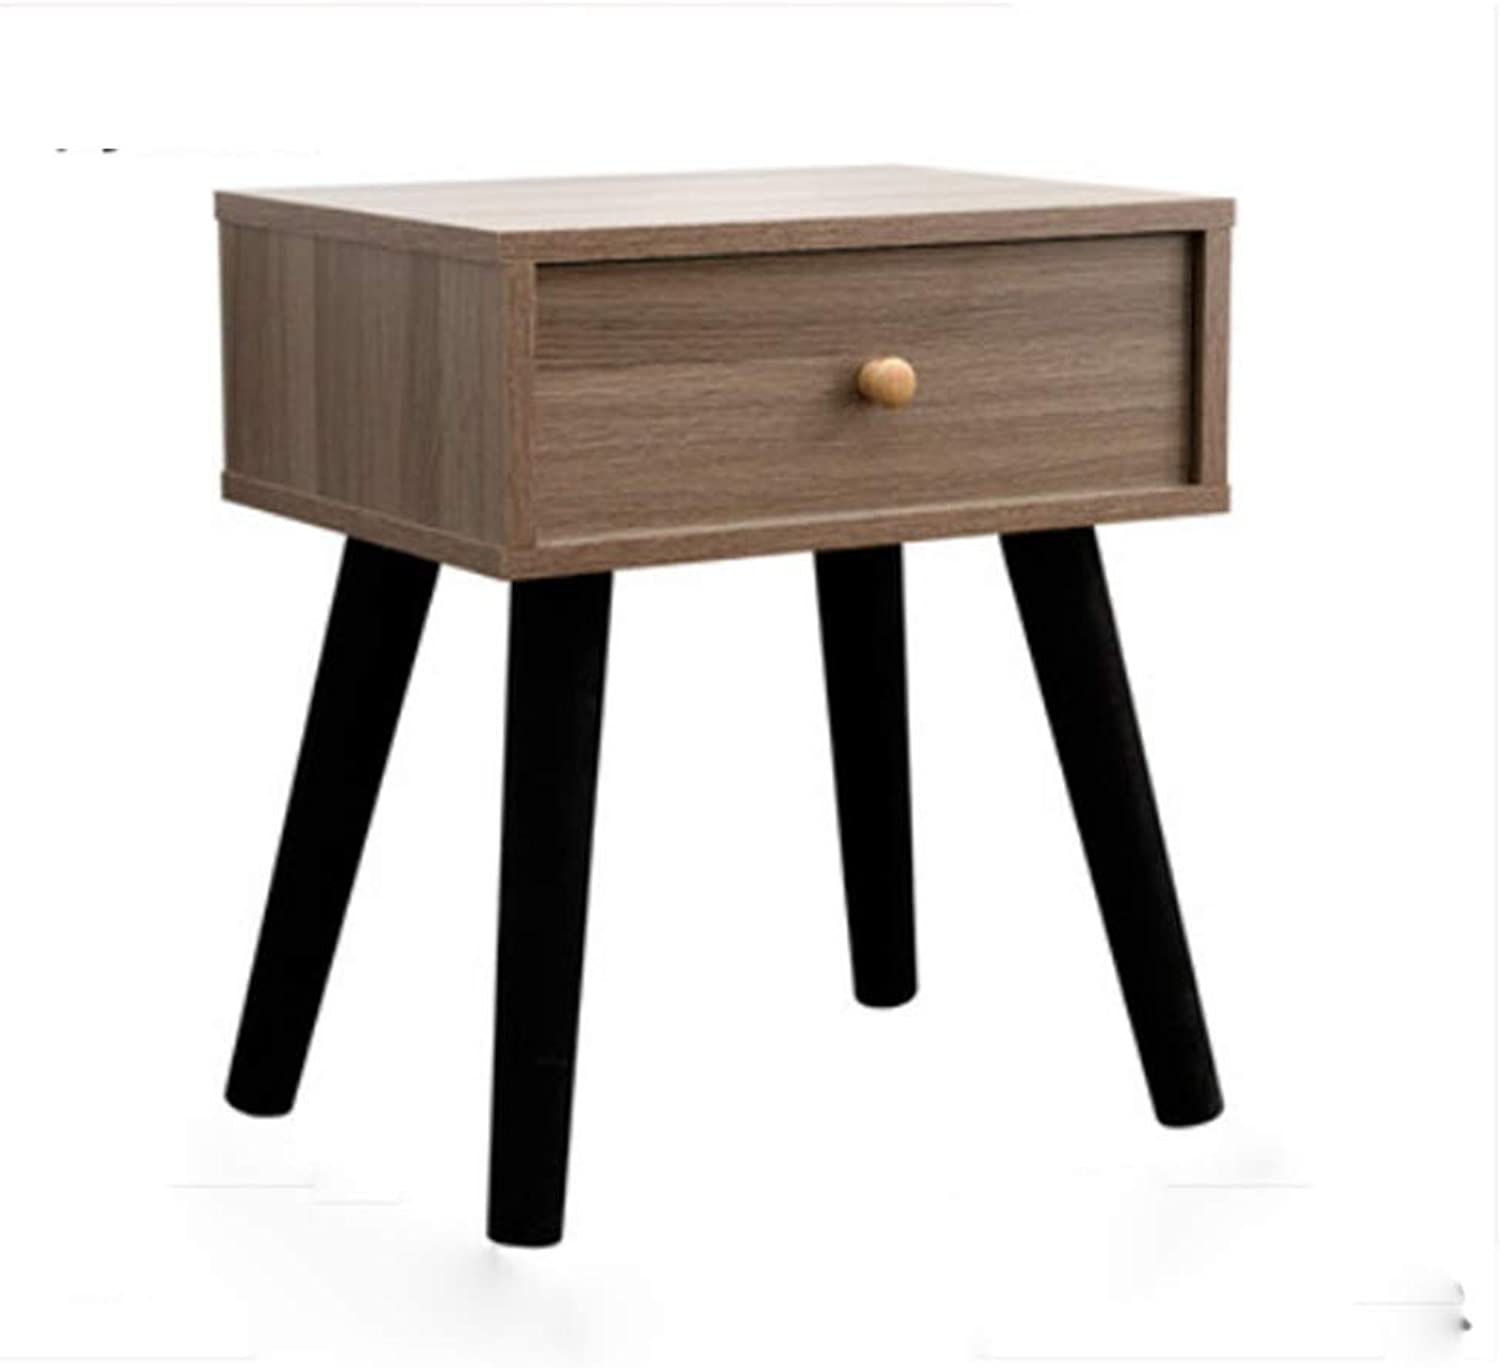 NAN Side End Table Nightstand with 1 Fabric Drawer, Modern Design Accent Table for Bedroom, Living Room, Apartment - 6 colors Available. Folding Tables (color   F)